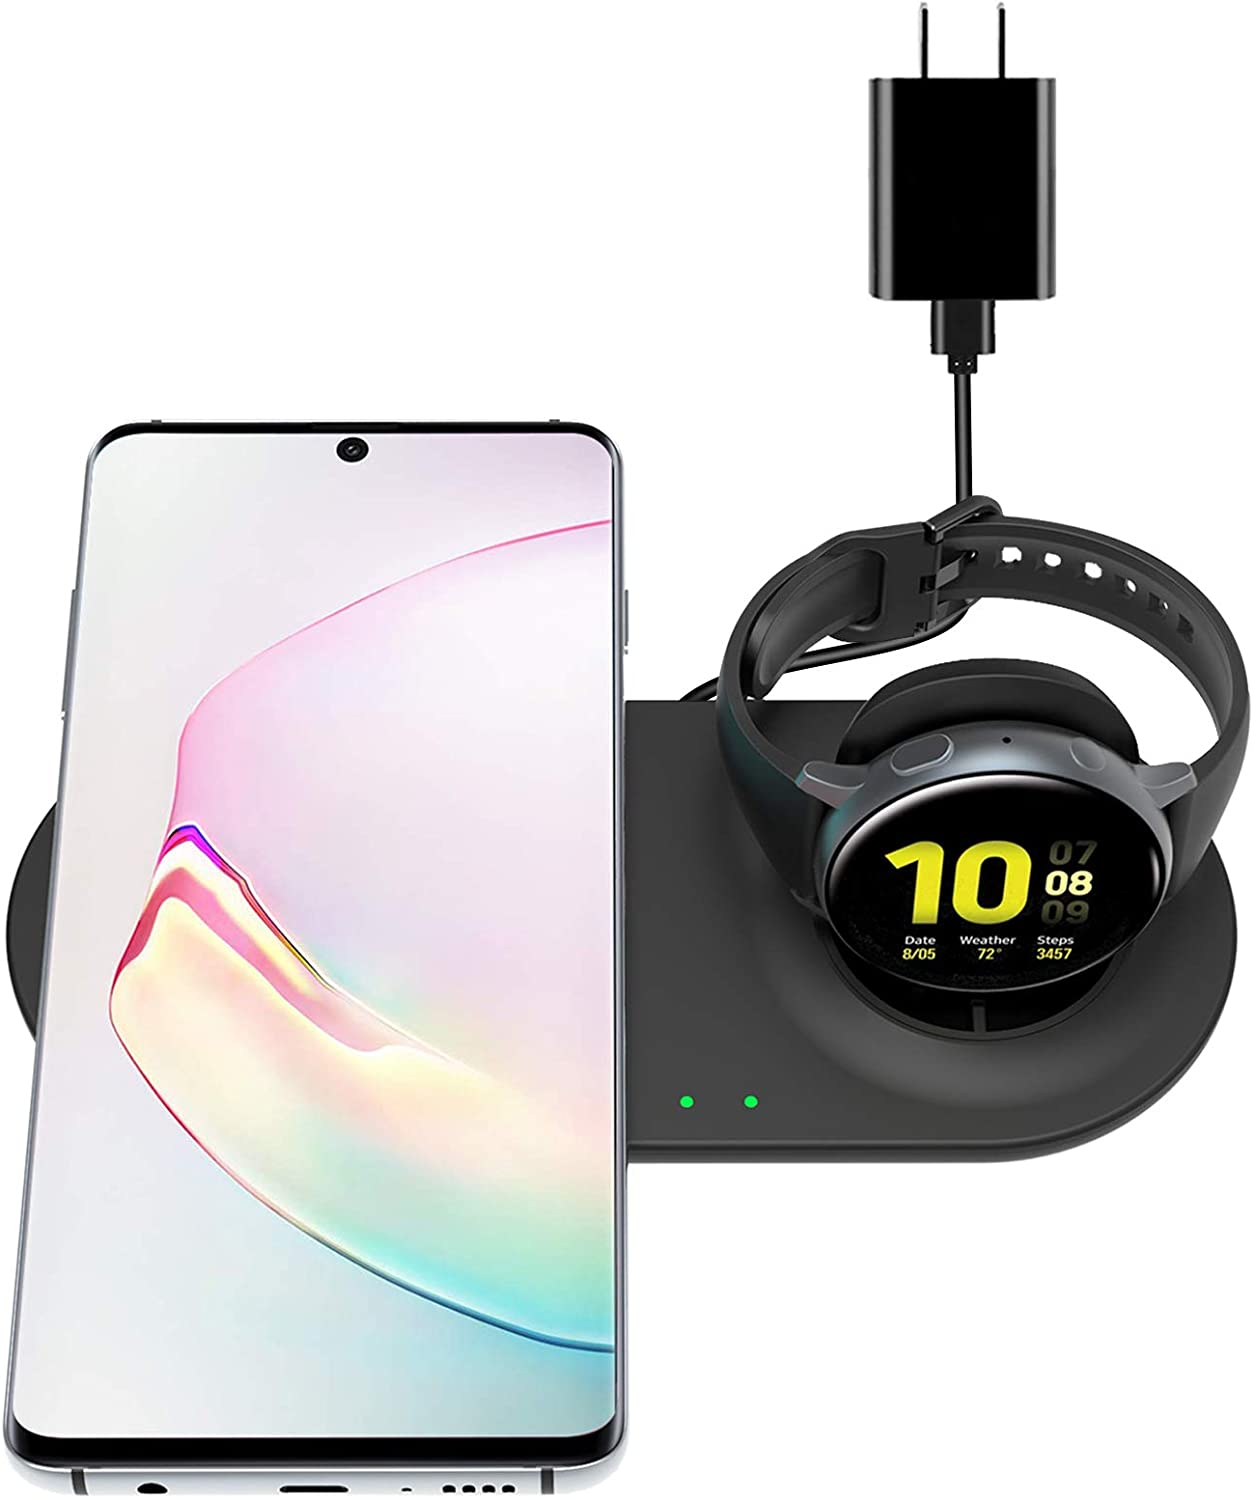 EloBeth Wireless Charging Station Compatible with Samsung Galaxy Watch Charger Active 2 1 Galaxy Watch 3 S20/S10/Note10/9/8/Buds Live Qi-Certified Android Devices Wireless Charger Stand Pad Dock